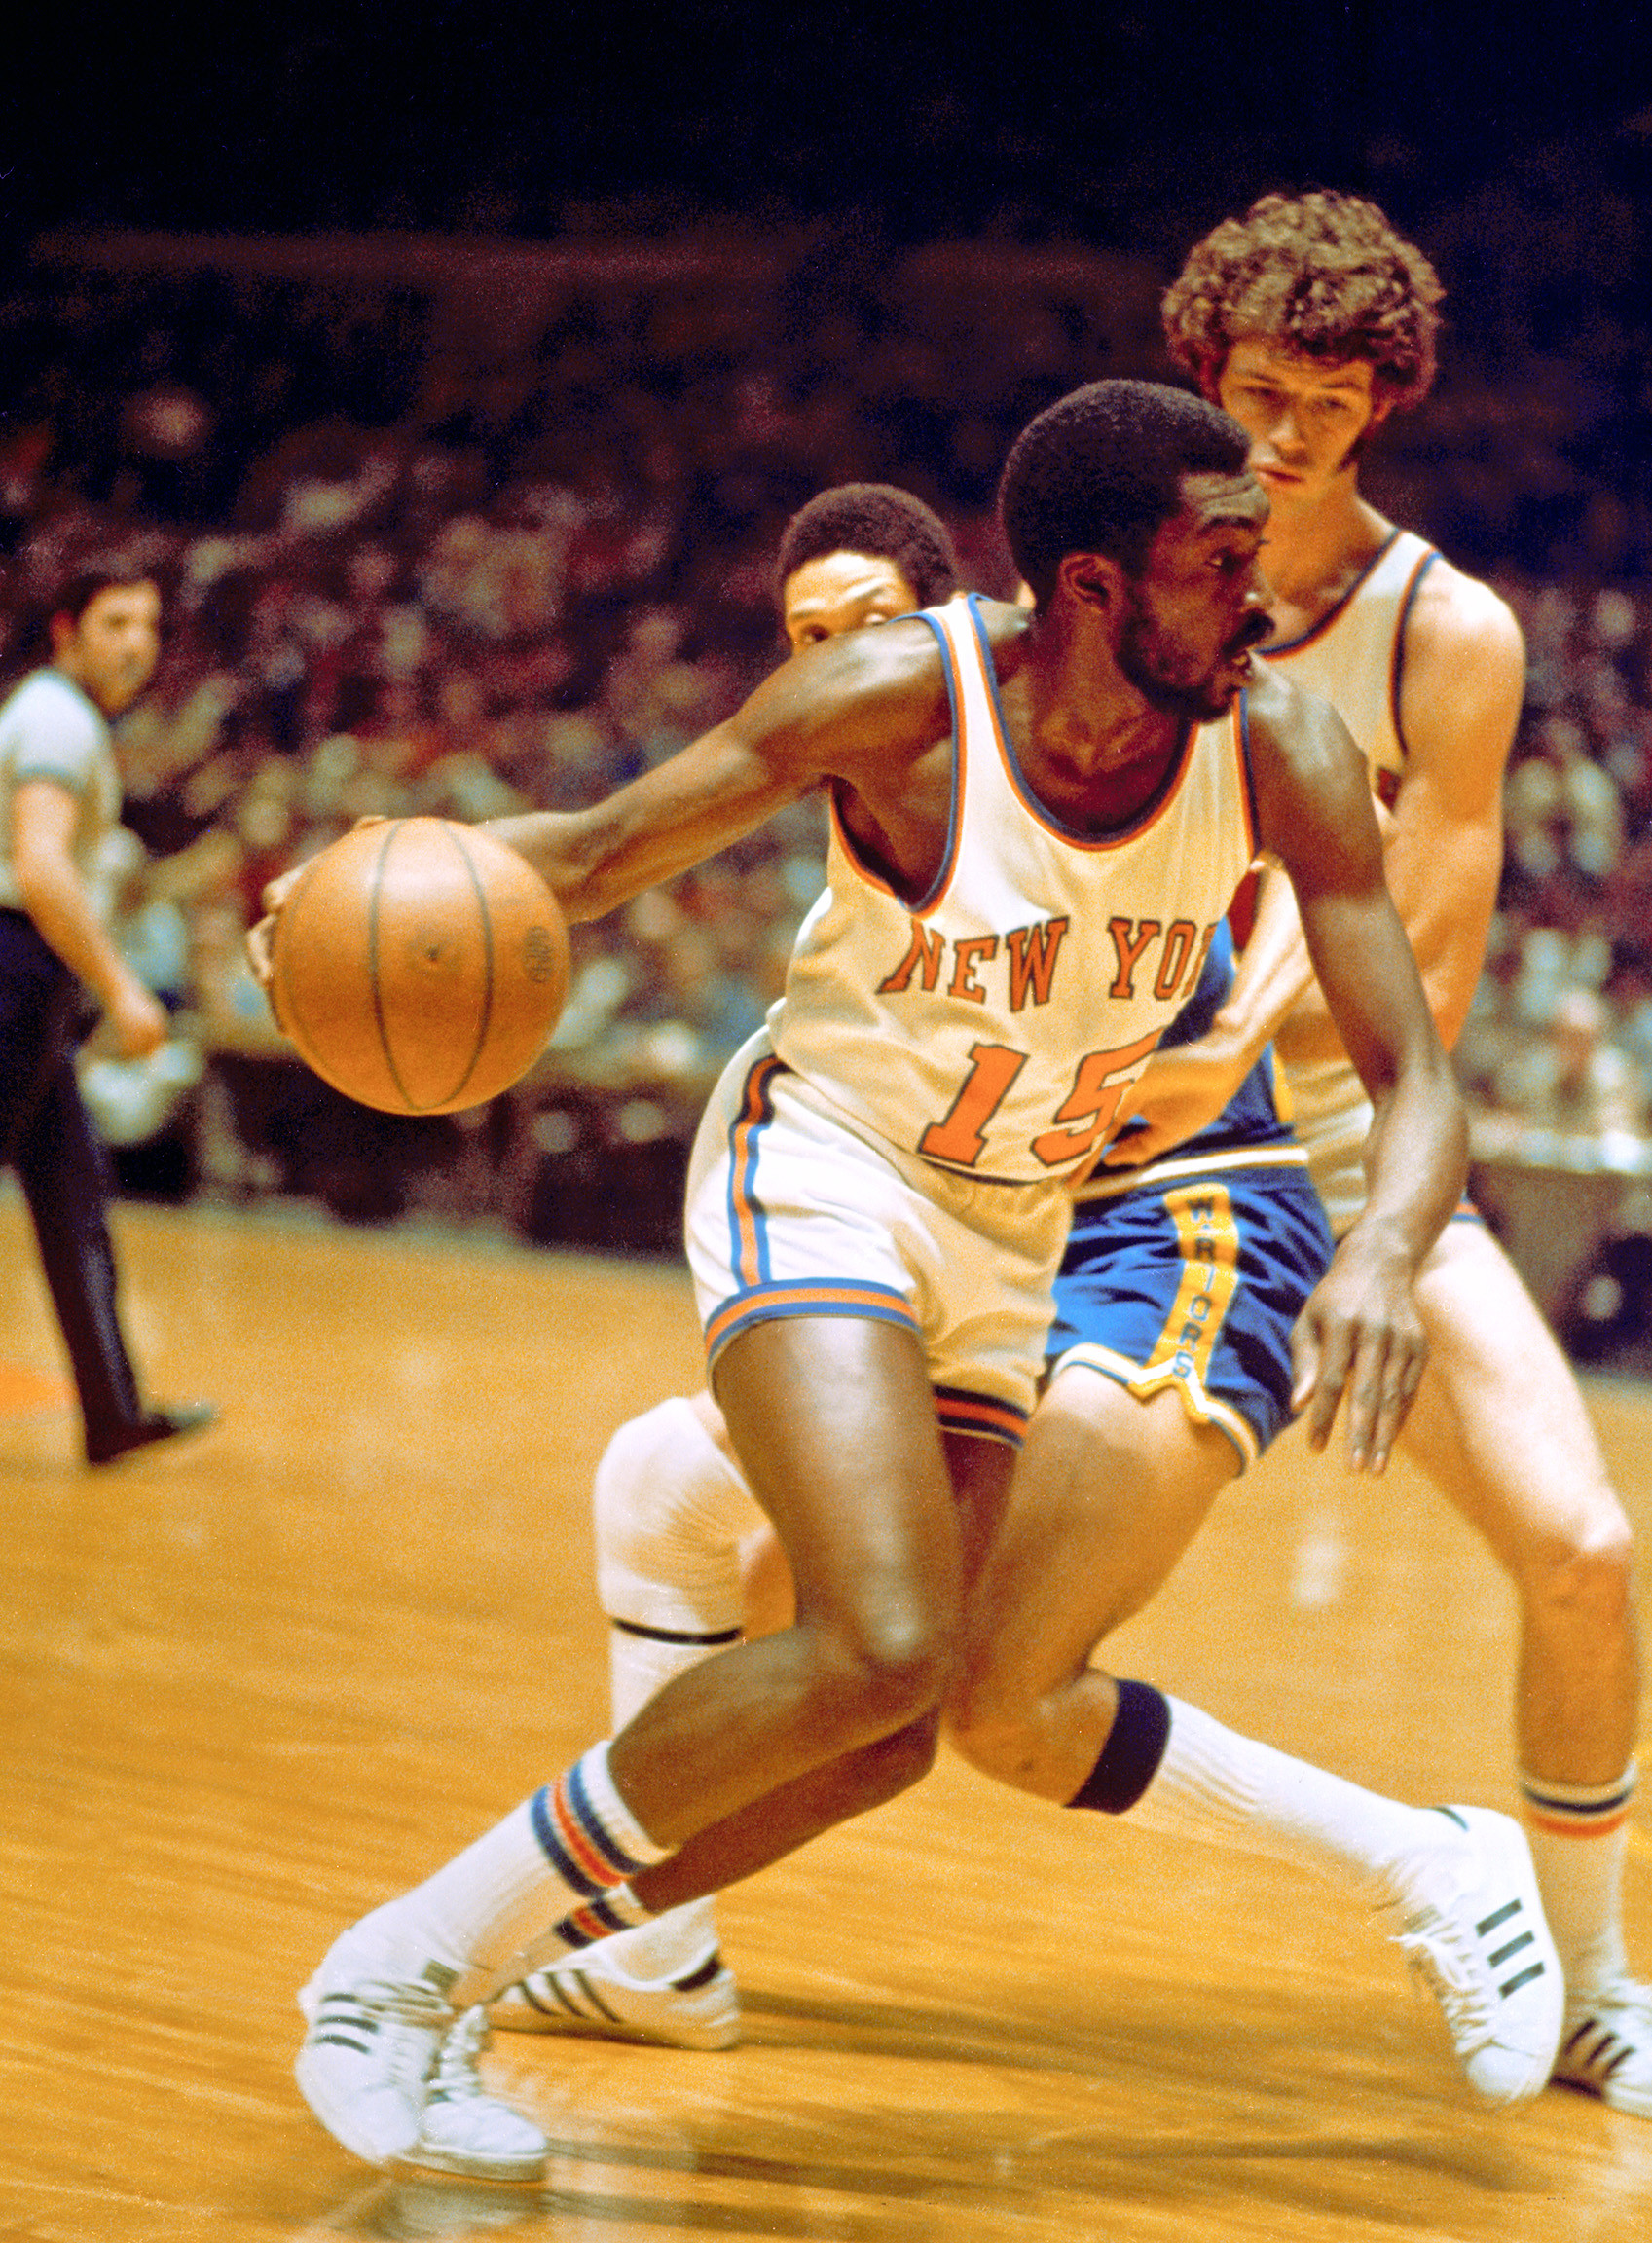 Earl Monroe, #15 in white (From the lens of George Kalinsky)